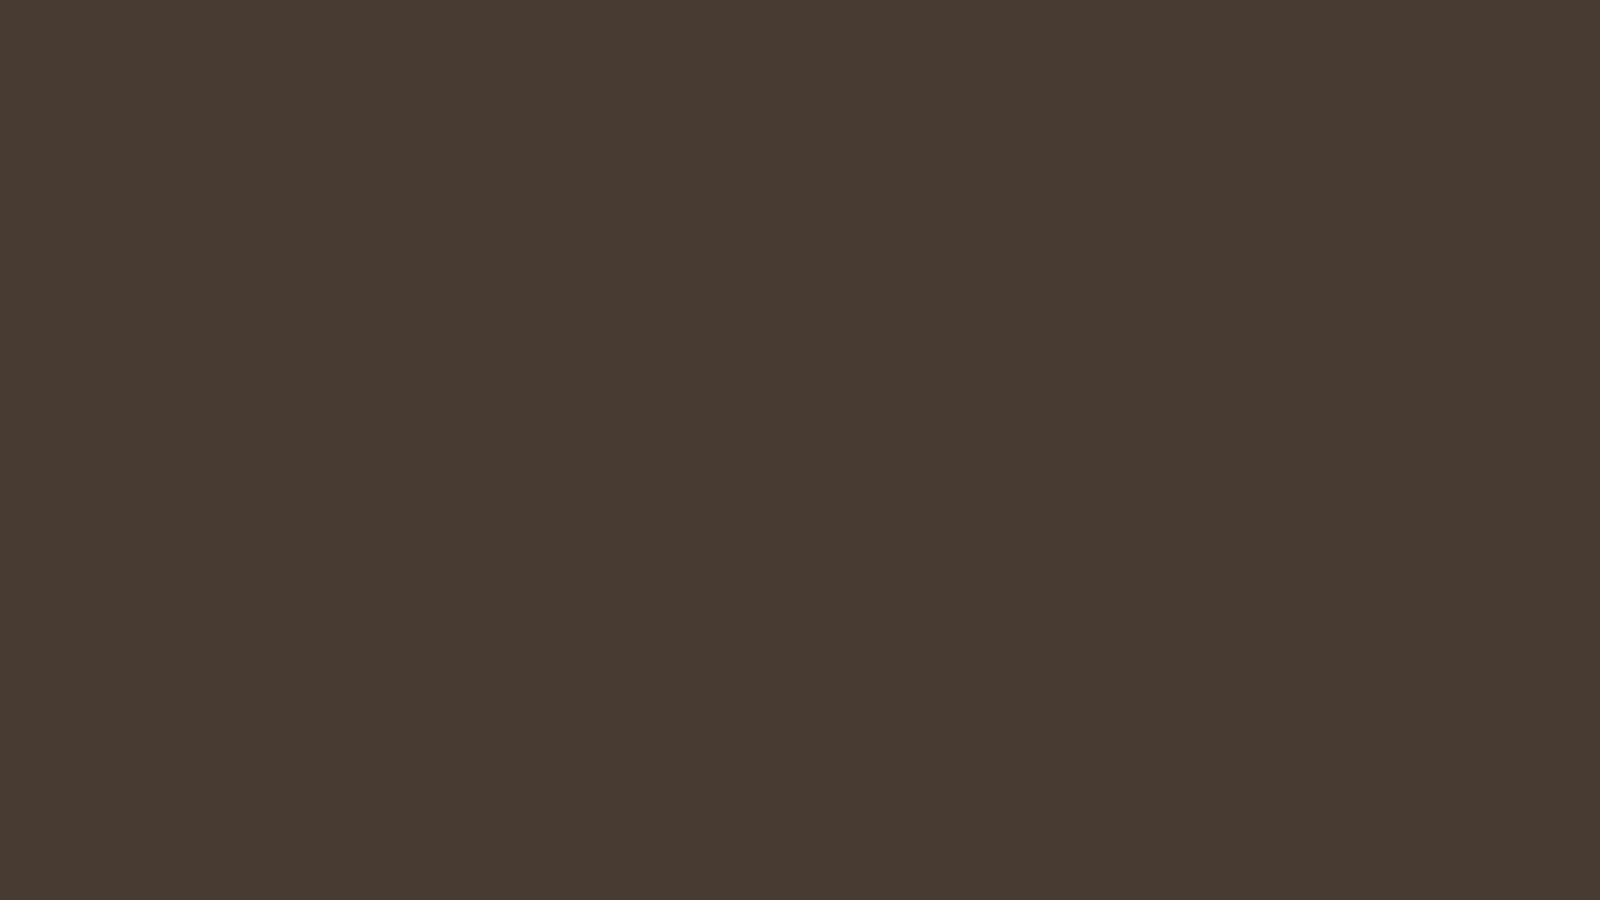 1600x900 Taupe Solid Color Background